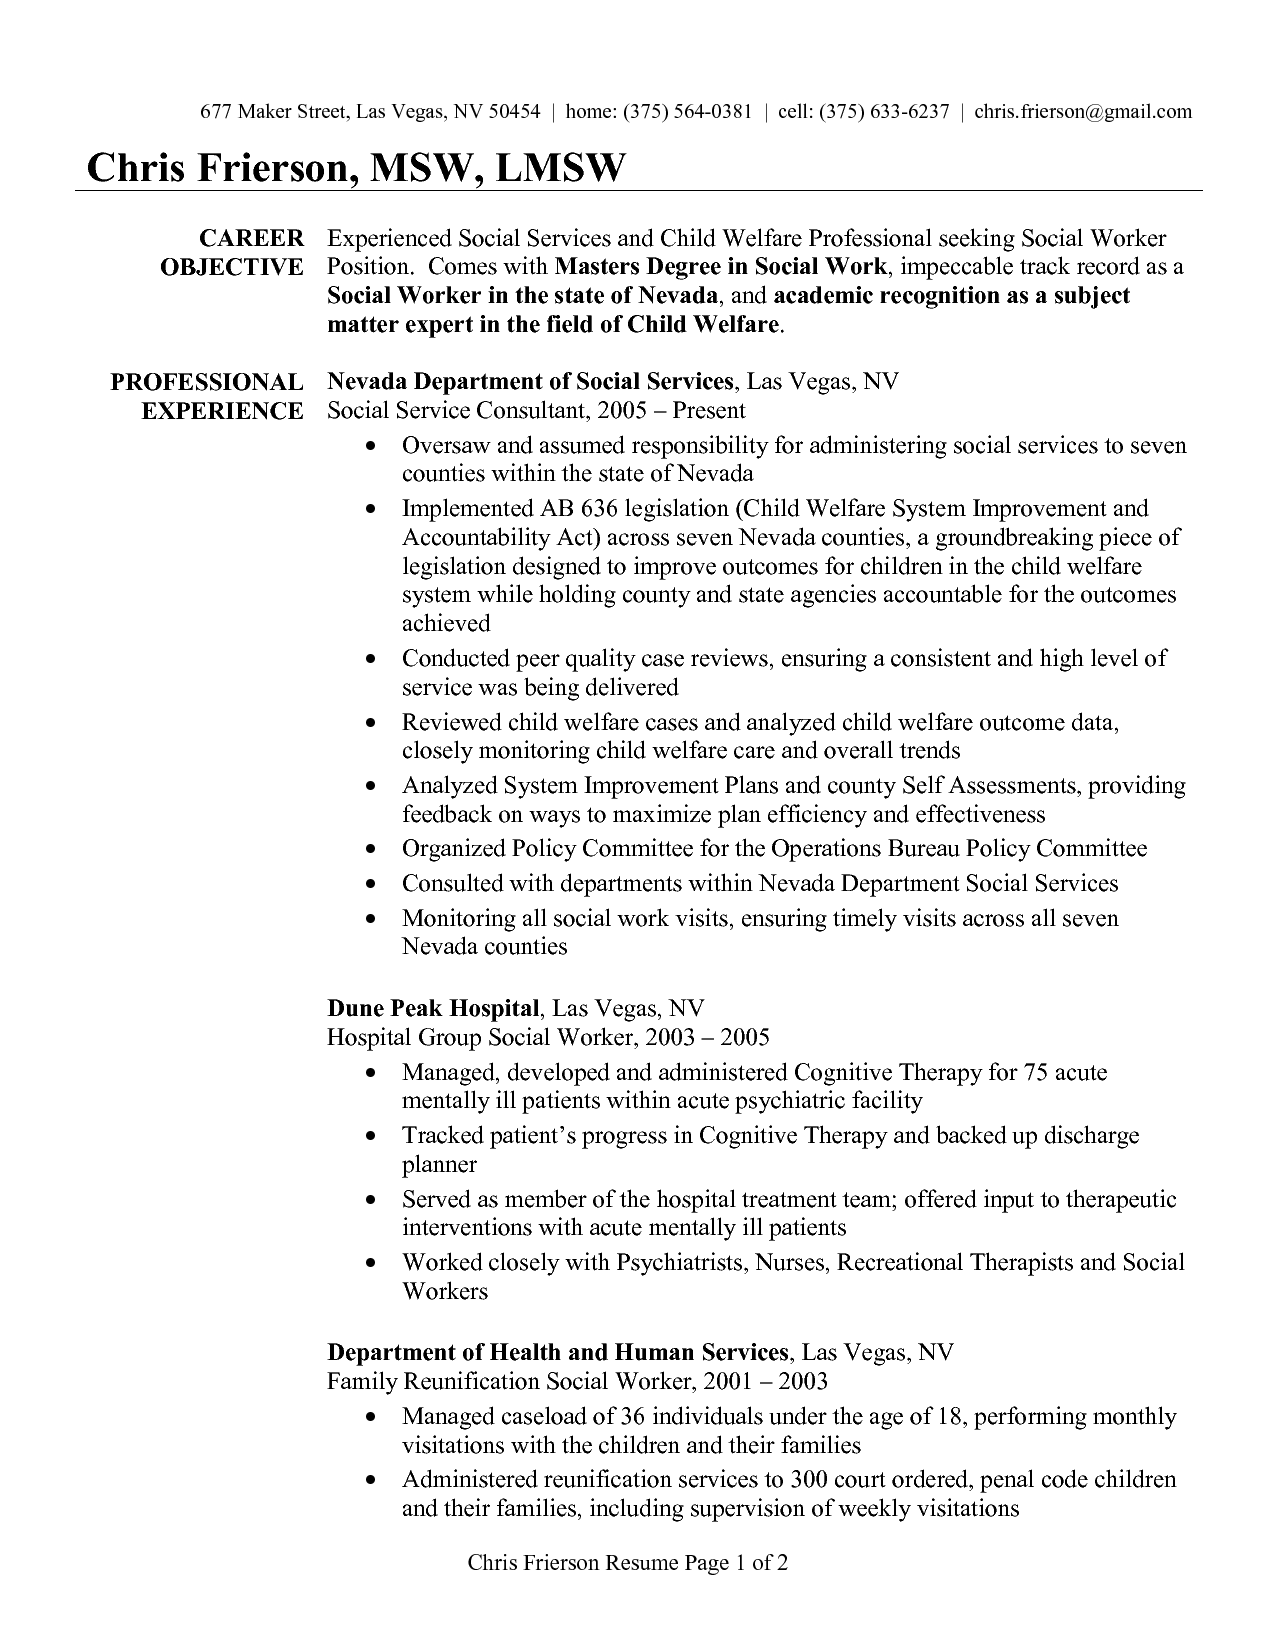 Social Worker Resume Objective Examples templates